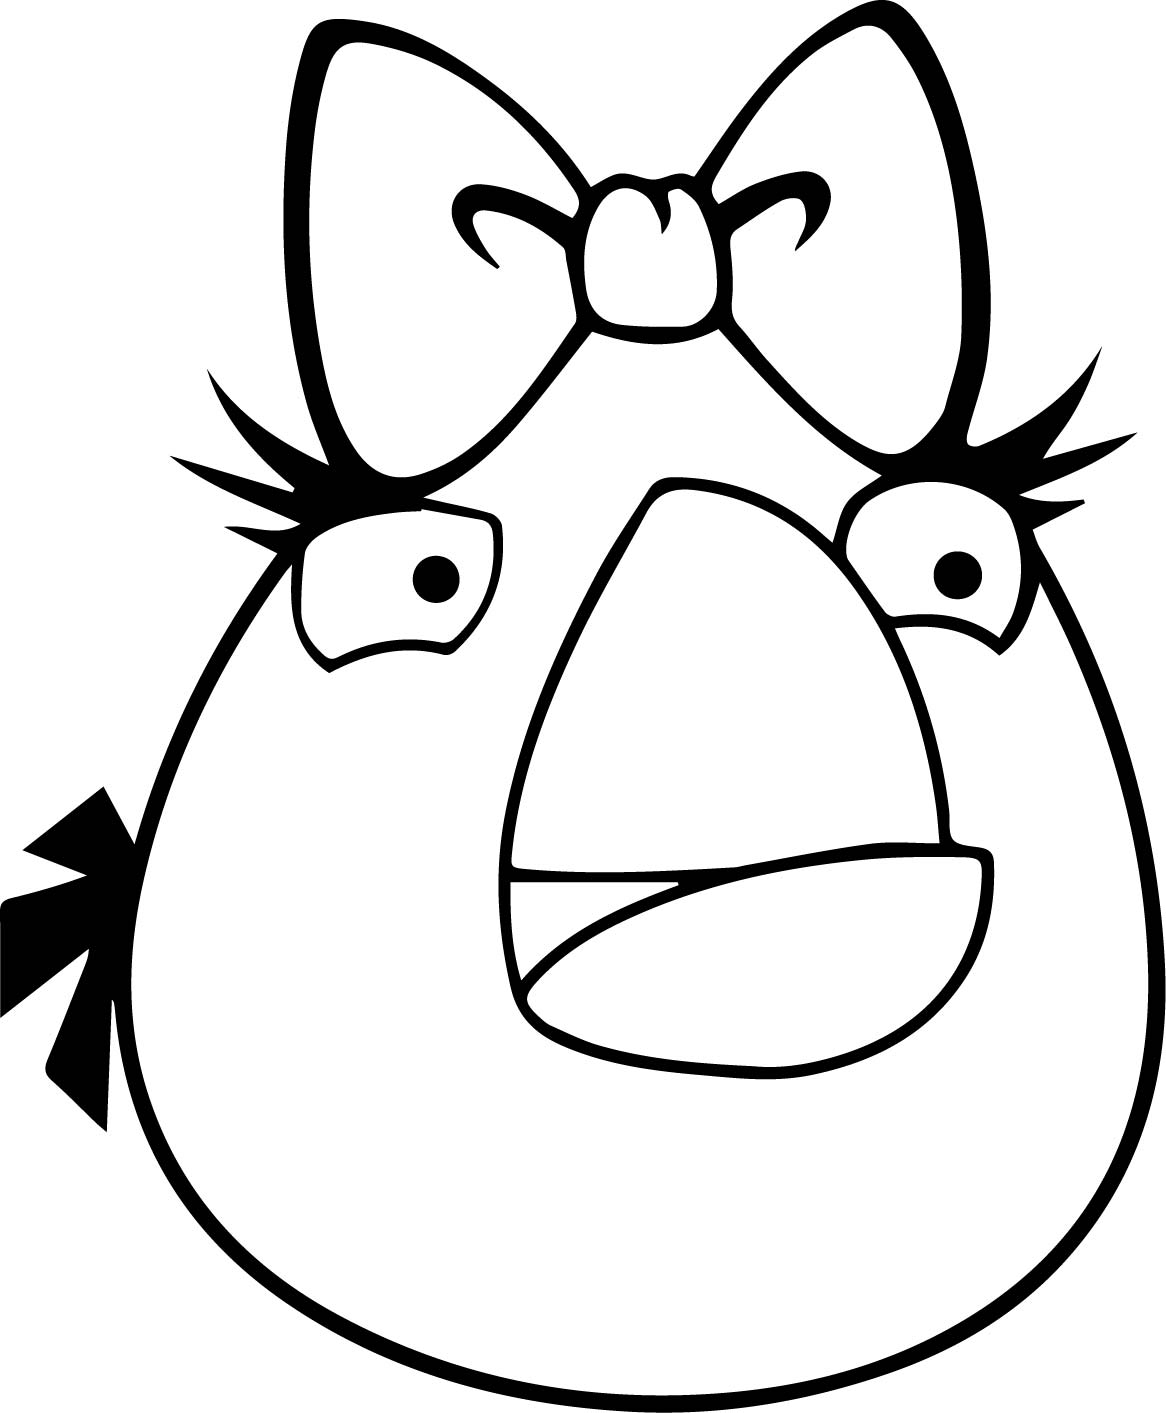 Angry bird girl white bird coloring page for Blue angry bird coloring page